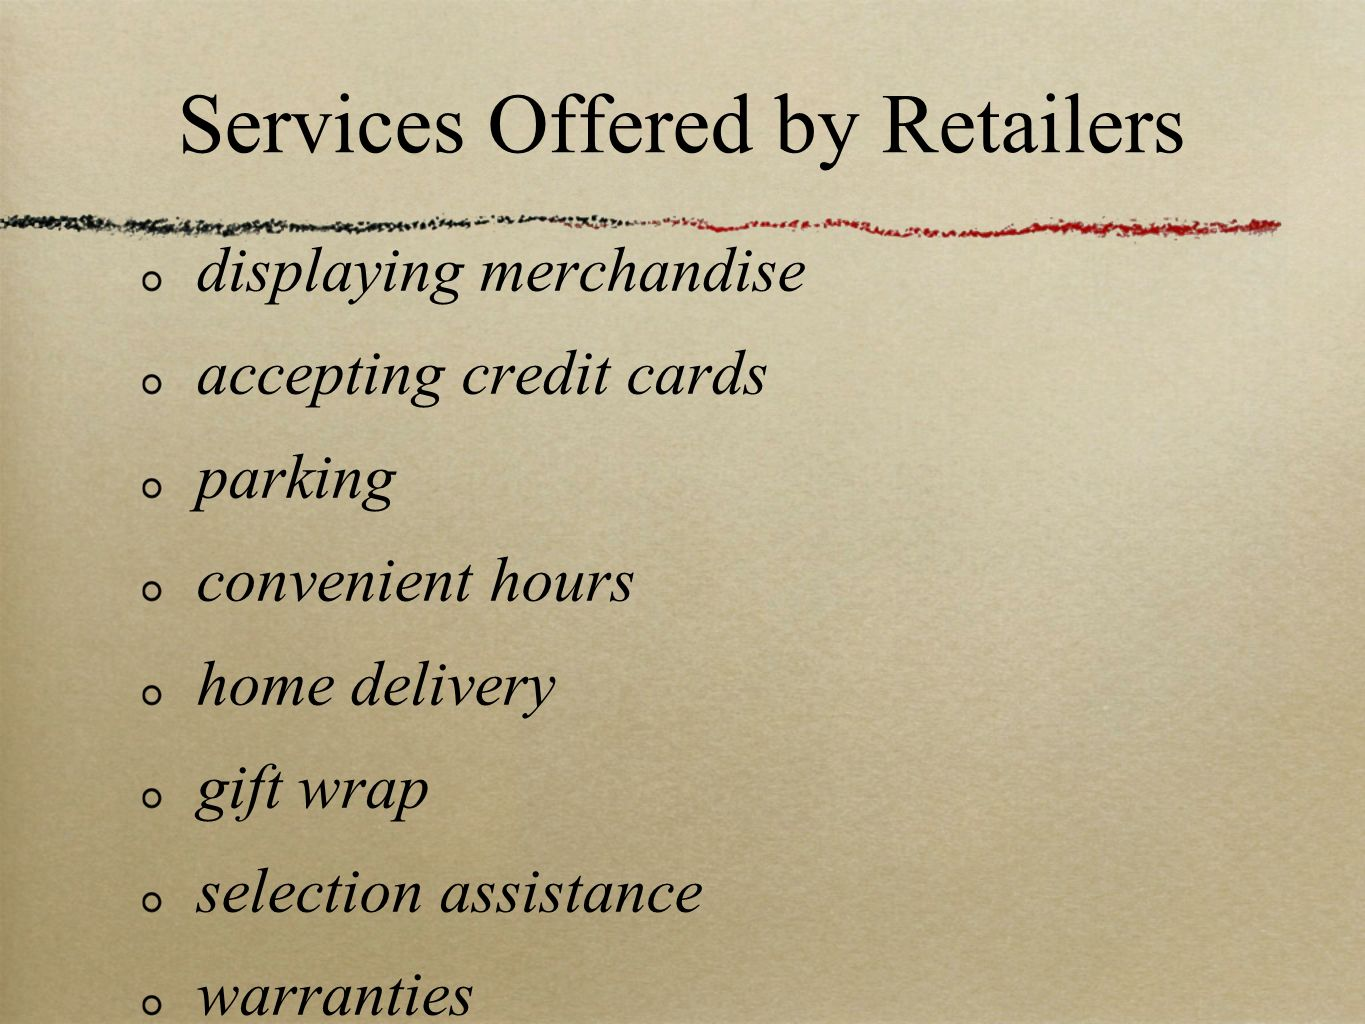 Services Offered by Retailers